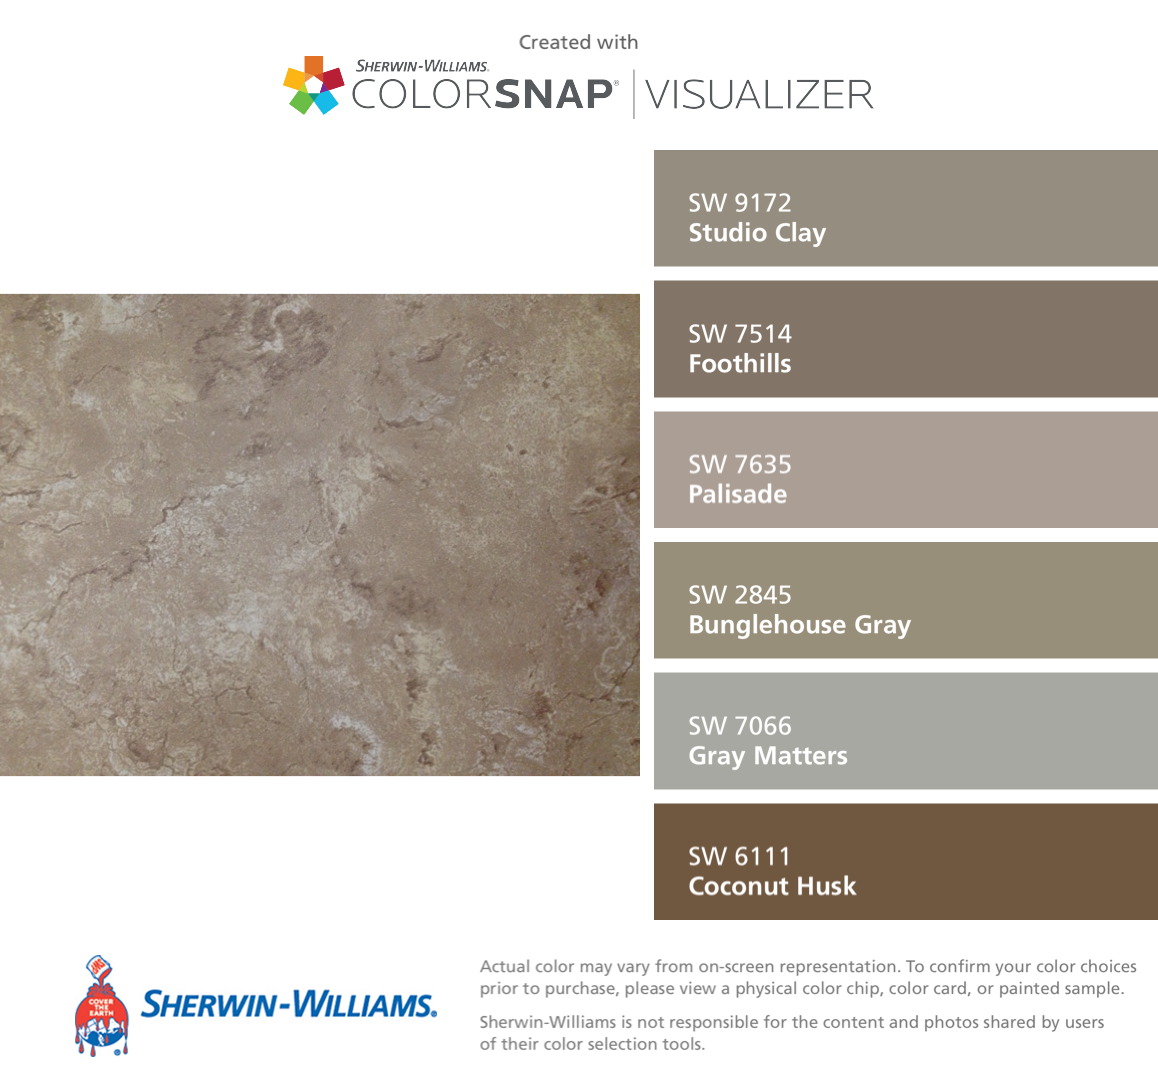 I Found These Colors With Colorsnap Visualizer For Iphone By Sherwin Williams Studio Clay Sw